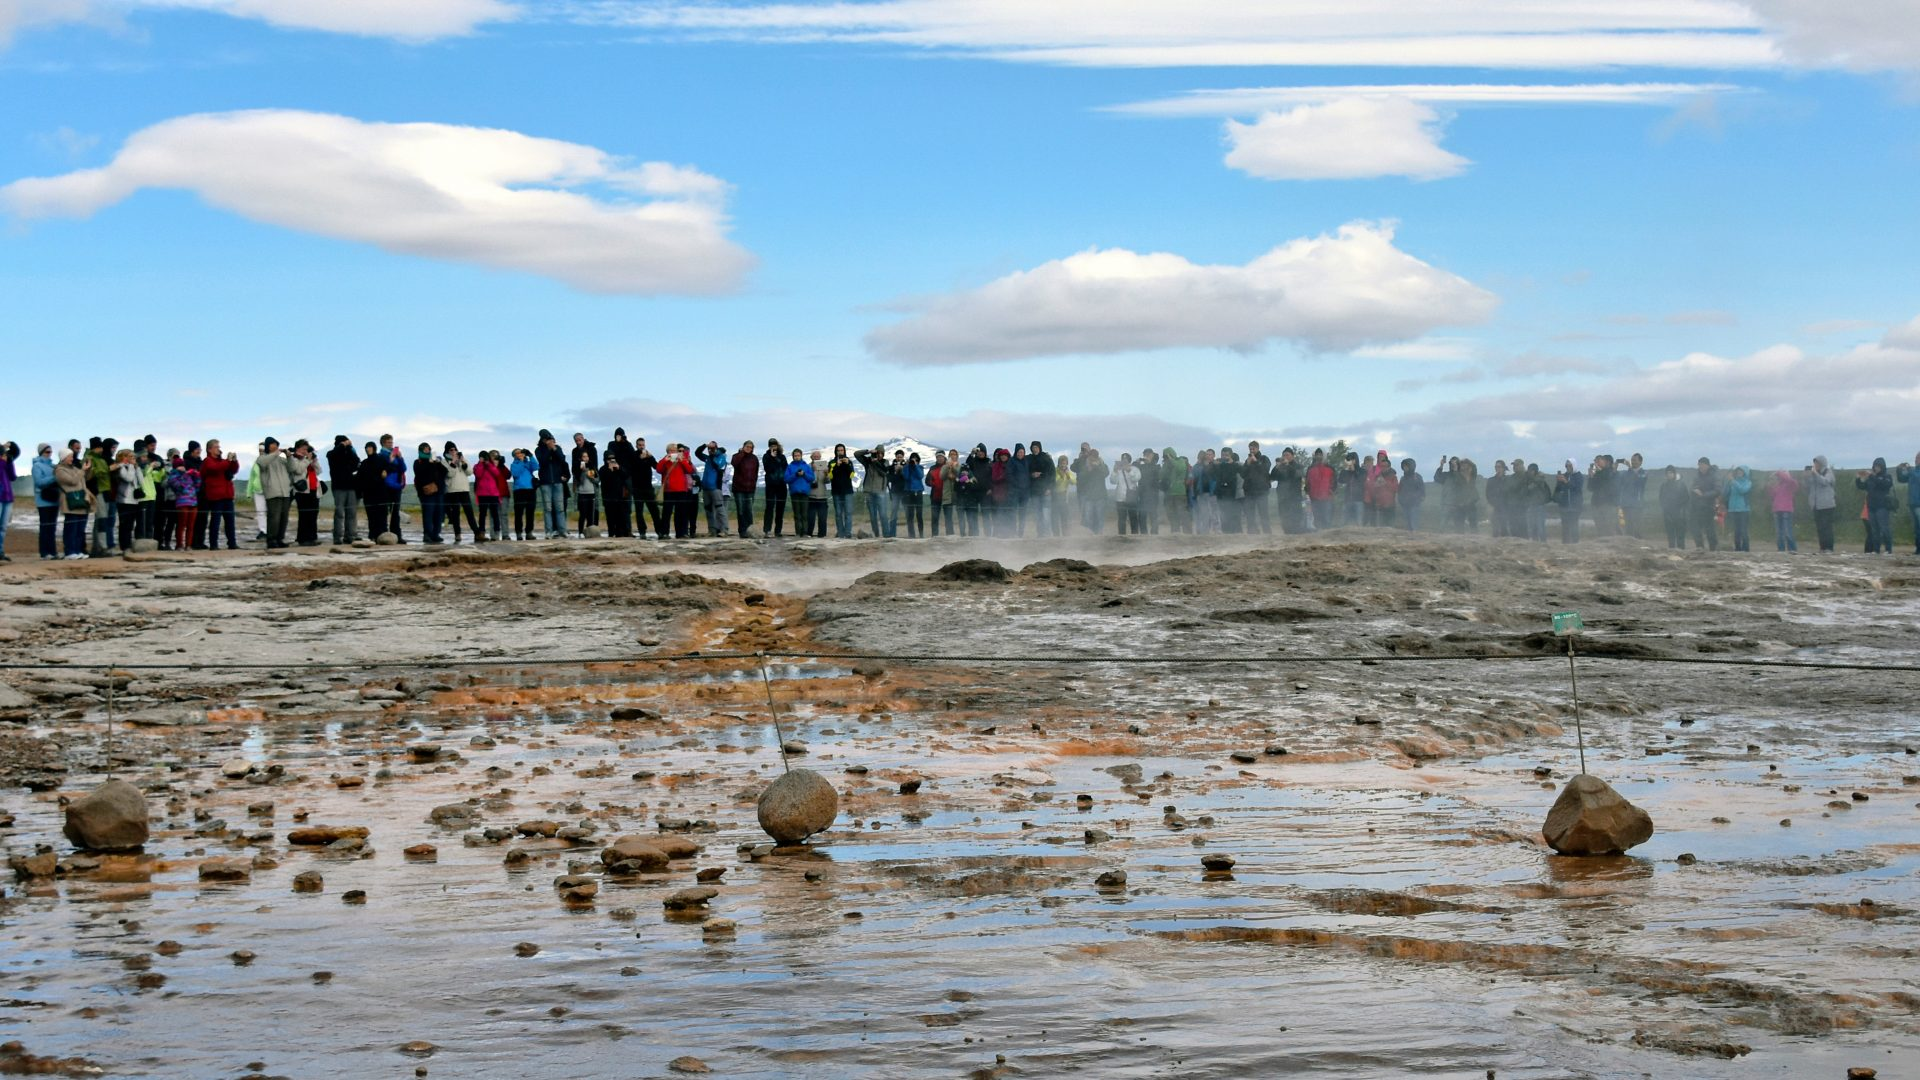 A crowd waiting waiting for the Strokkur Geyser eruption in Reykjavík, Iceland